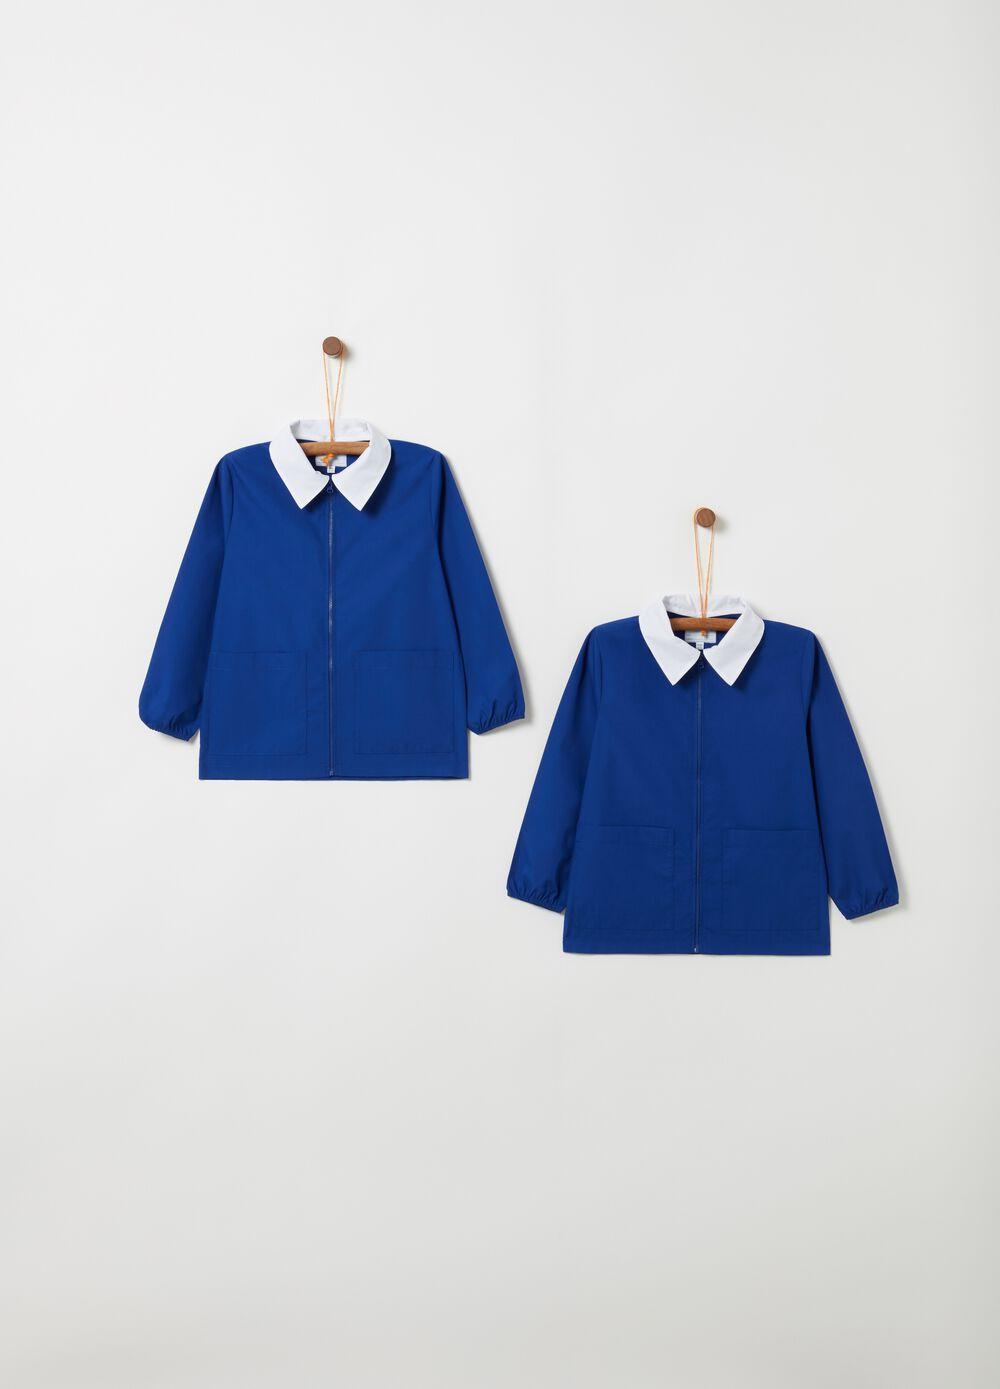 Set of school smocks with classic collar pockets and zip fastening